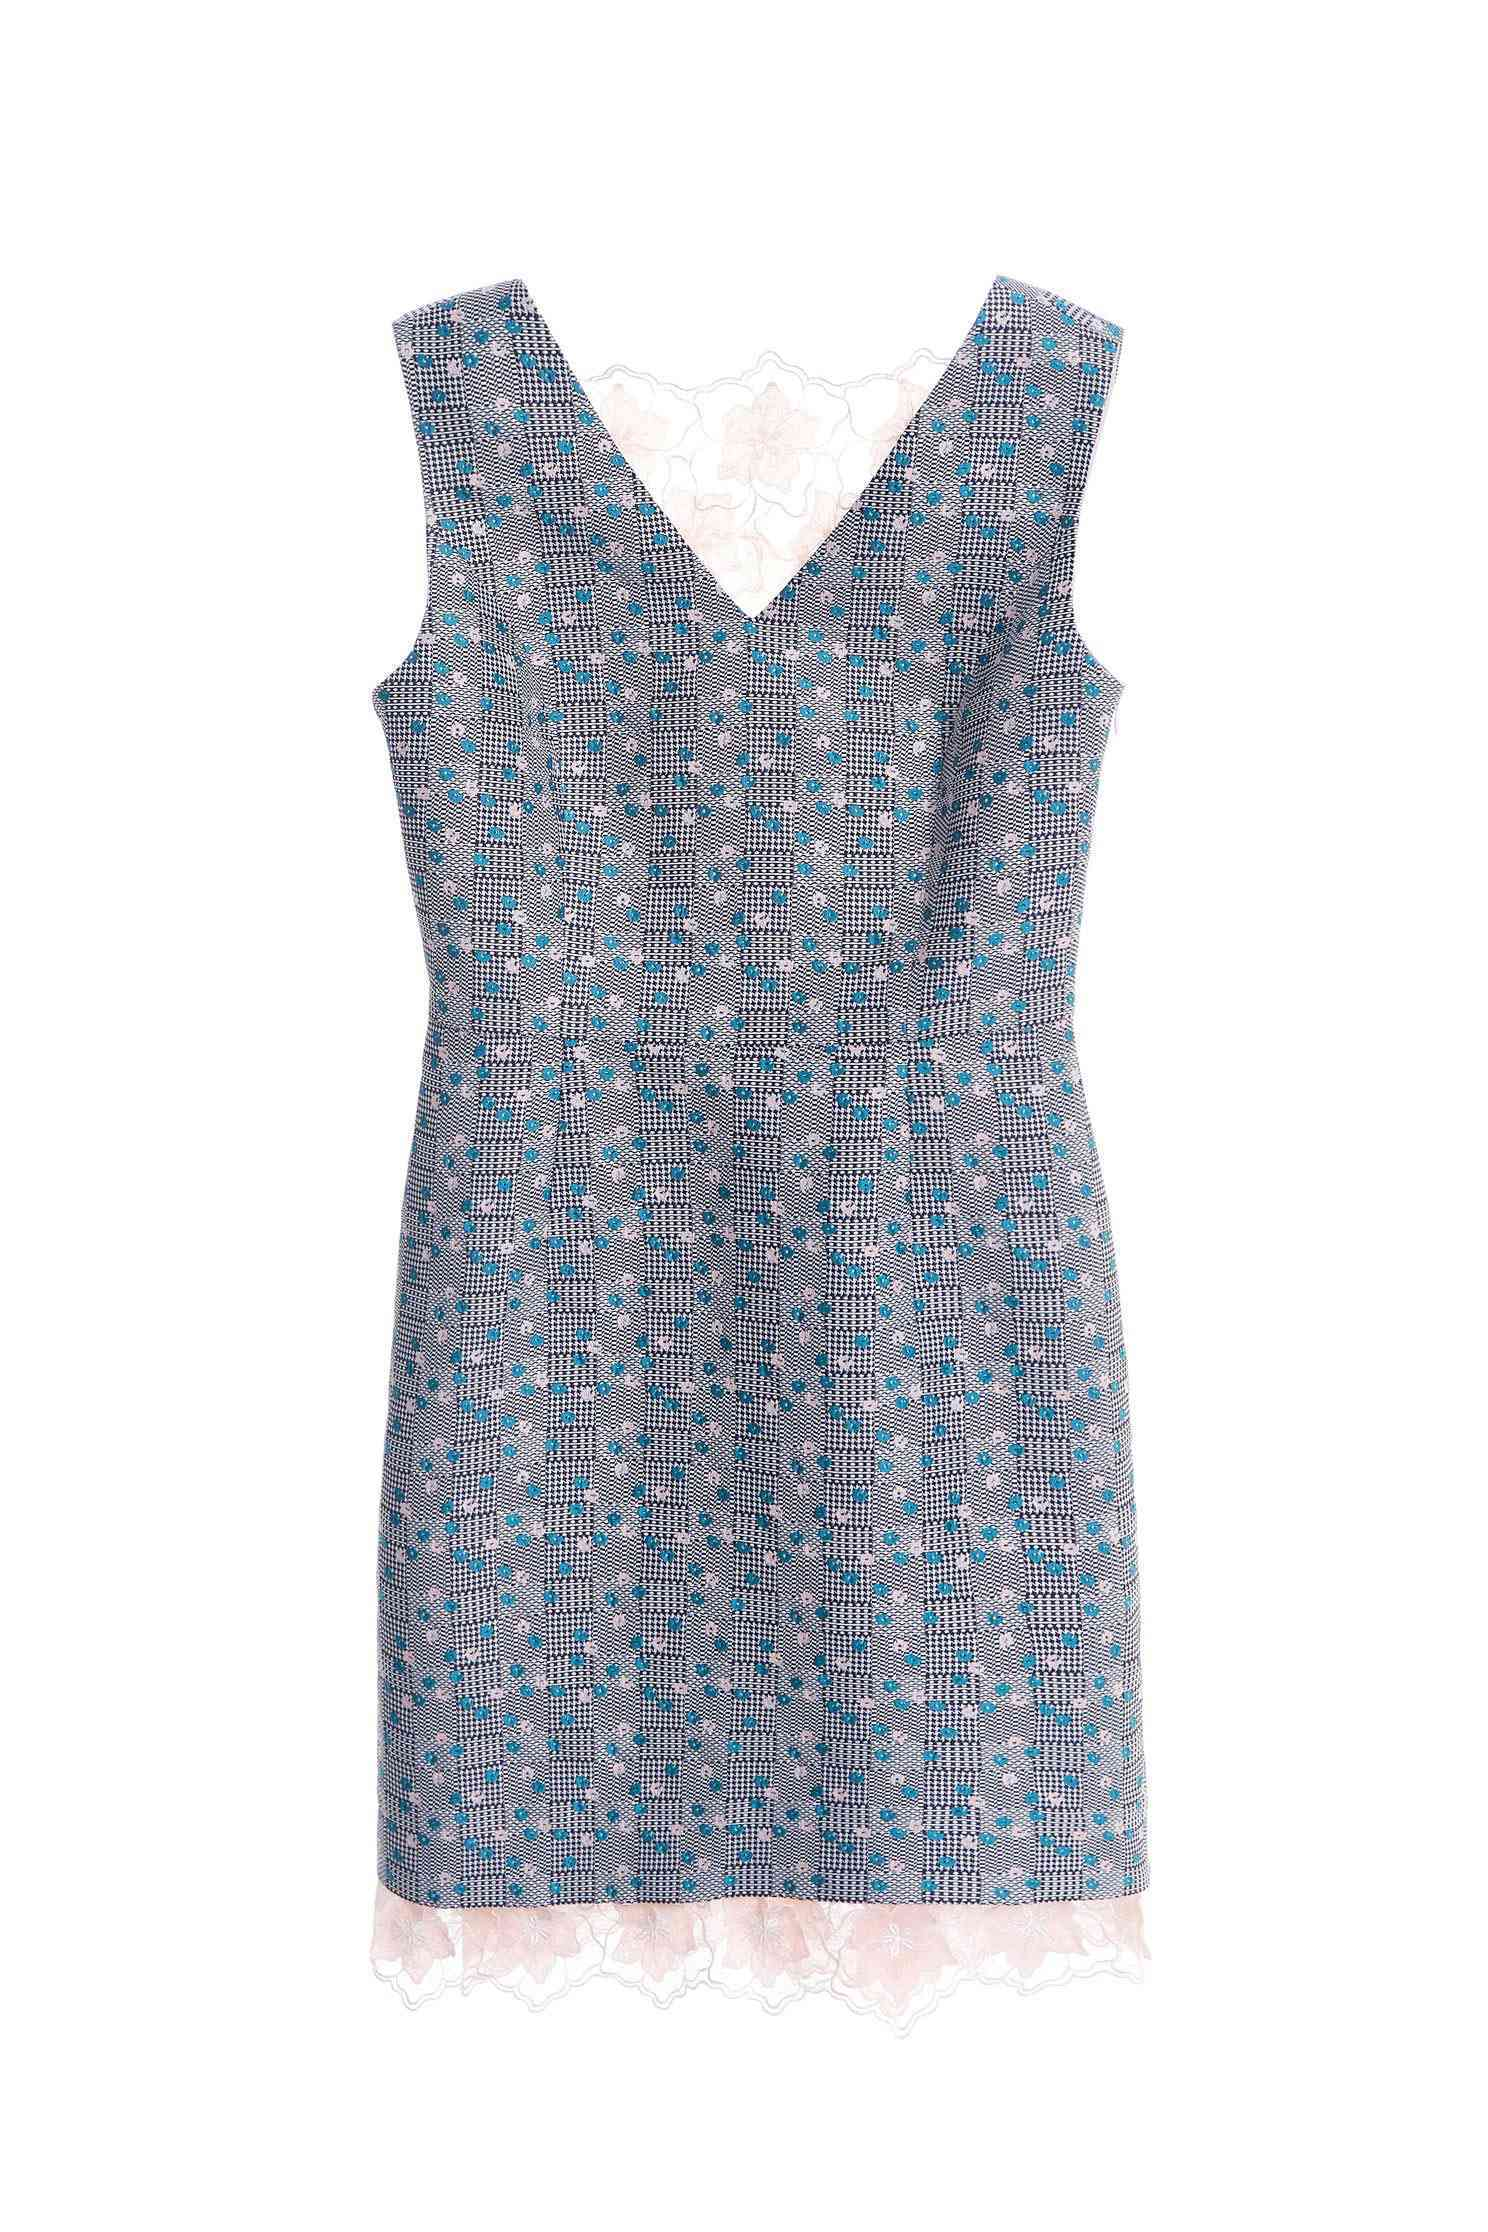 Jacquard dress mixed lace